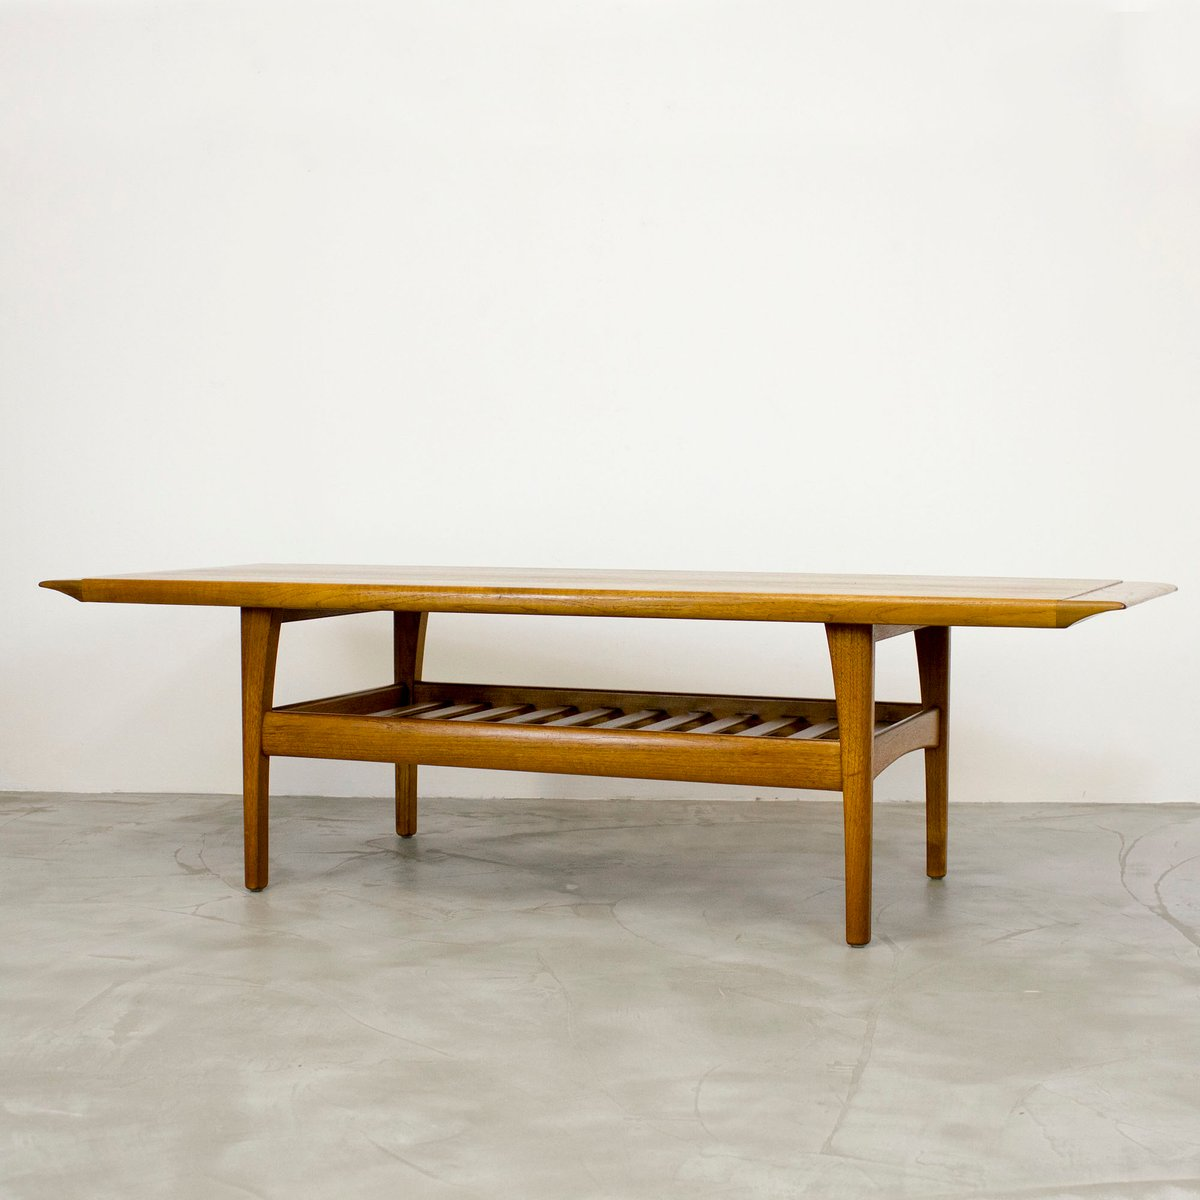 Teak Oil Coffee Table: Danish Teak Coffee Table With Magazine Shelf, 1960s For